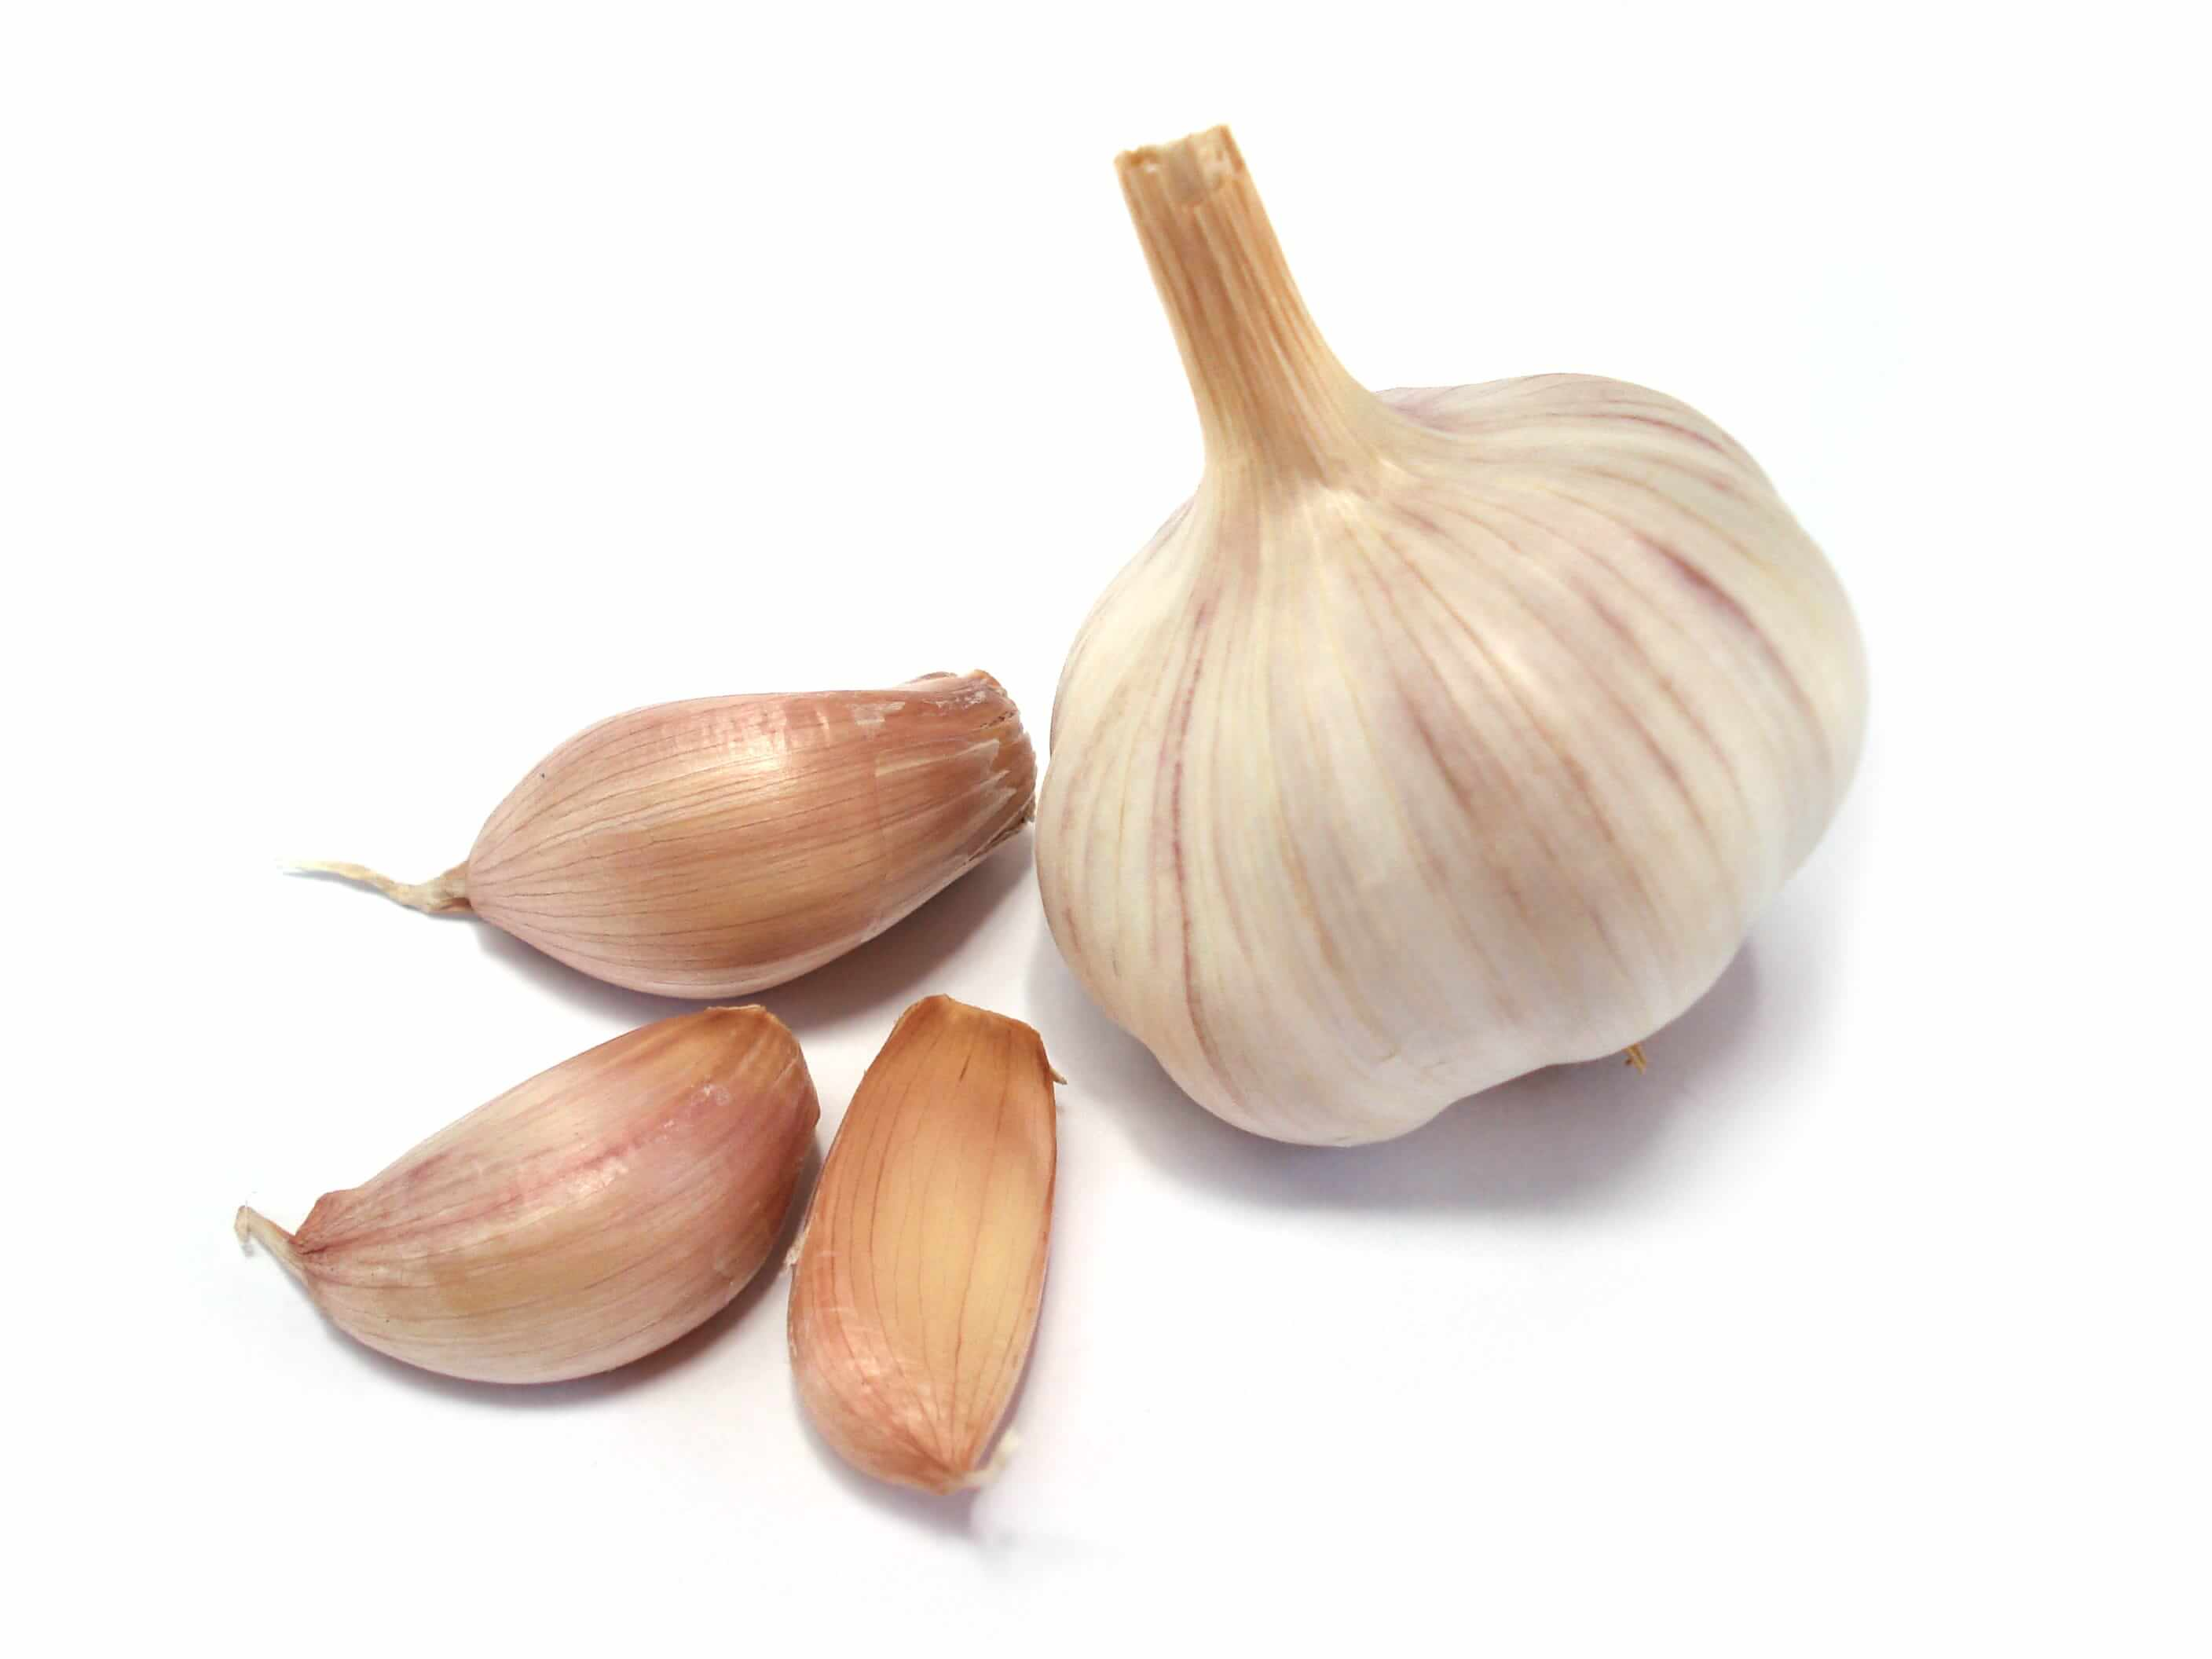 Garlic (5 count)